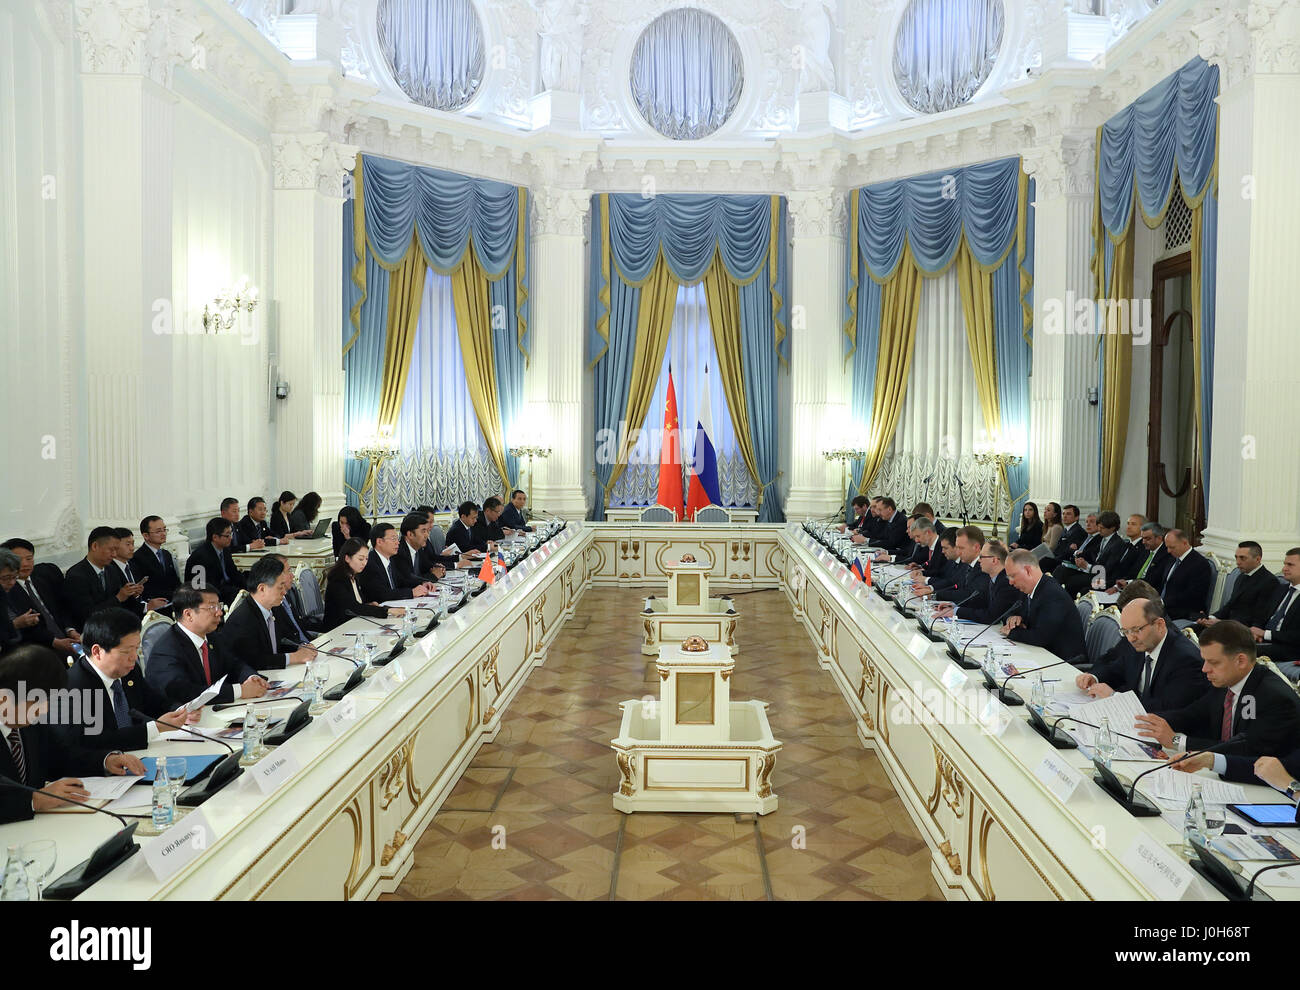 Moscow, Russia. 12th Apr, 2017. Chinese Vice Premier Zhang Gaoli and Russian First Deputy Prime Minister Igor Shuvalov co-chair the fourth meeting of the China-Russia Investment Cooperation Committee in Moscow, Russia, April 12, 2017. Credit: Wang Ye/Xinhua/Alamy Live News Stock Photo